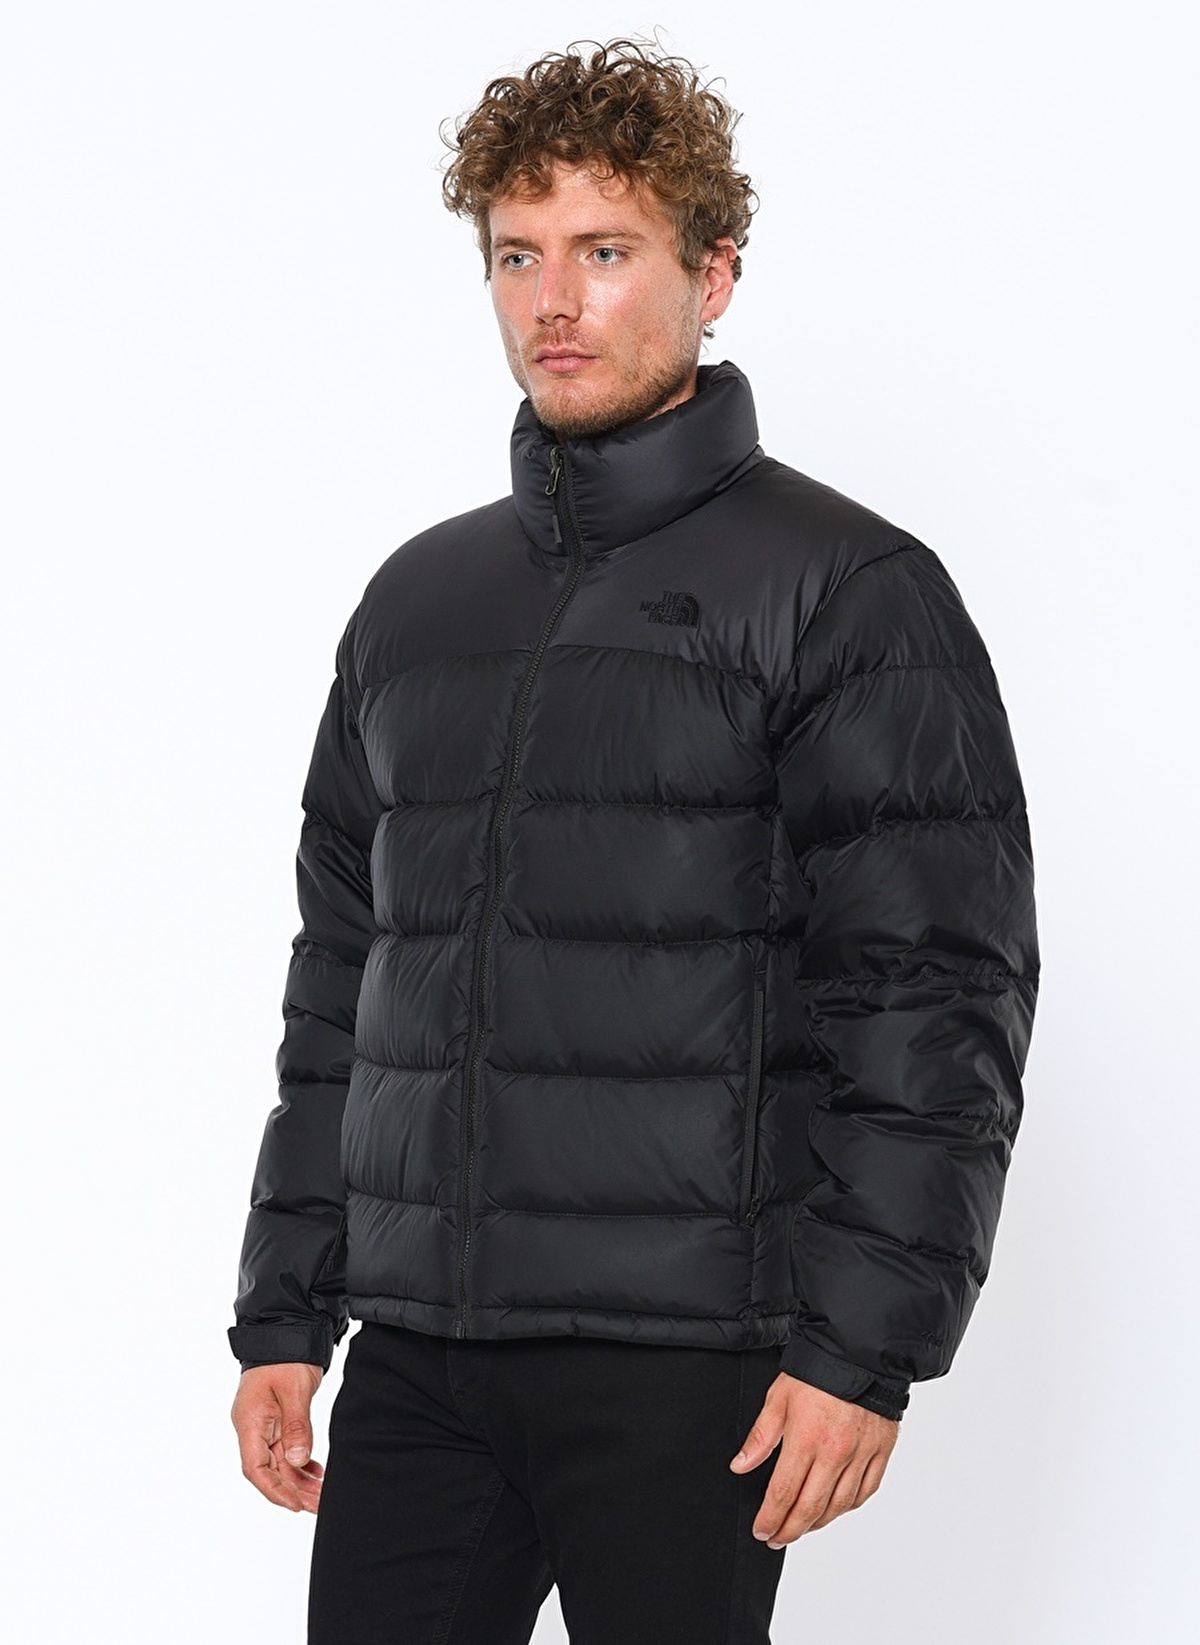 3c2b1a102b The North Face Erkek Mont Tnf Black